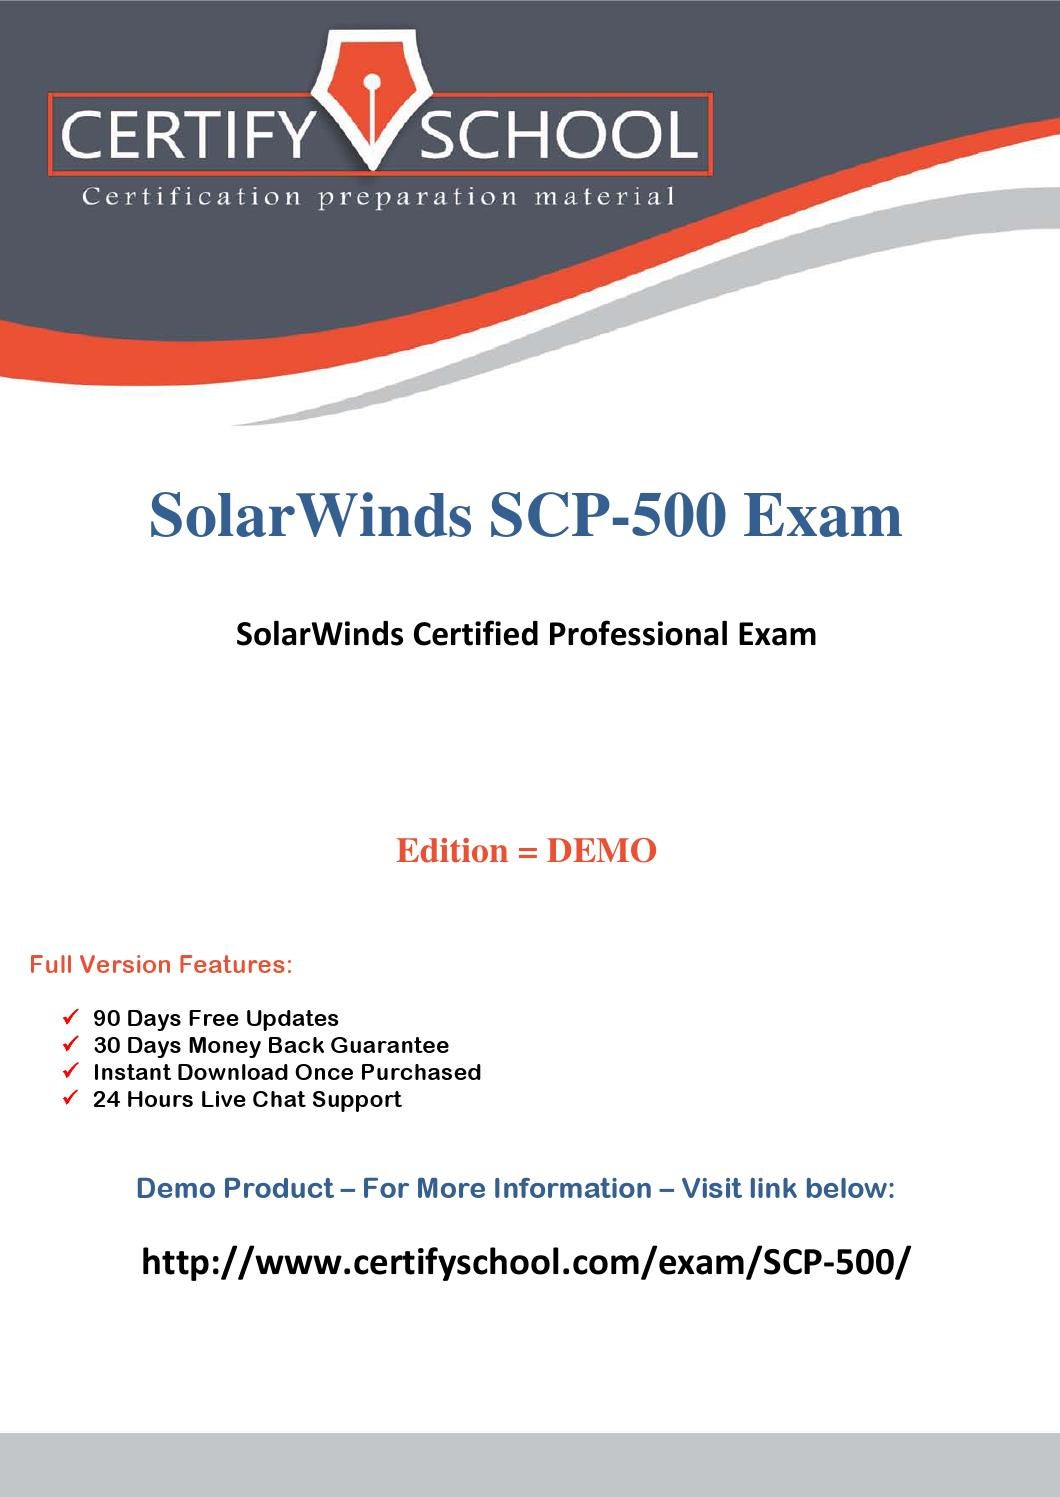 Scp 500 Exam Questions Answers Pdf By Certifyschoool Issuu